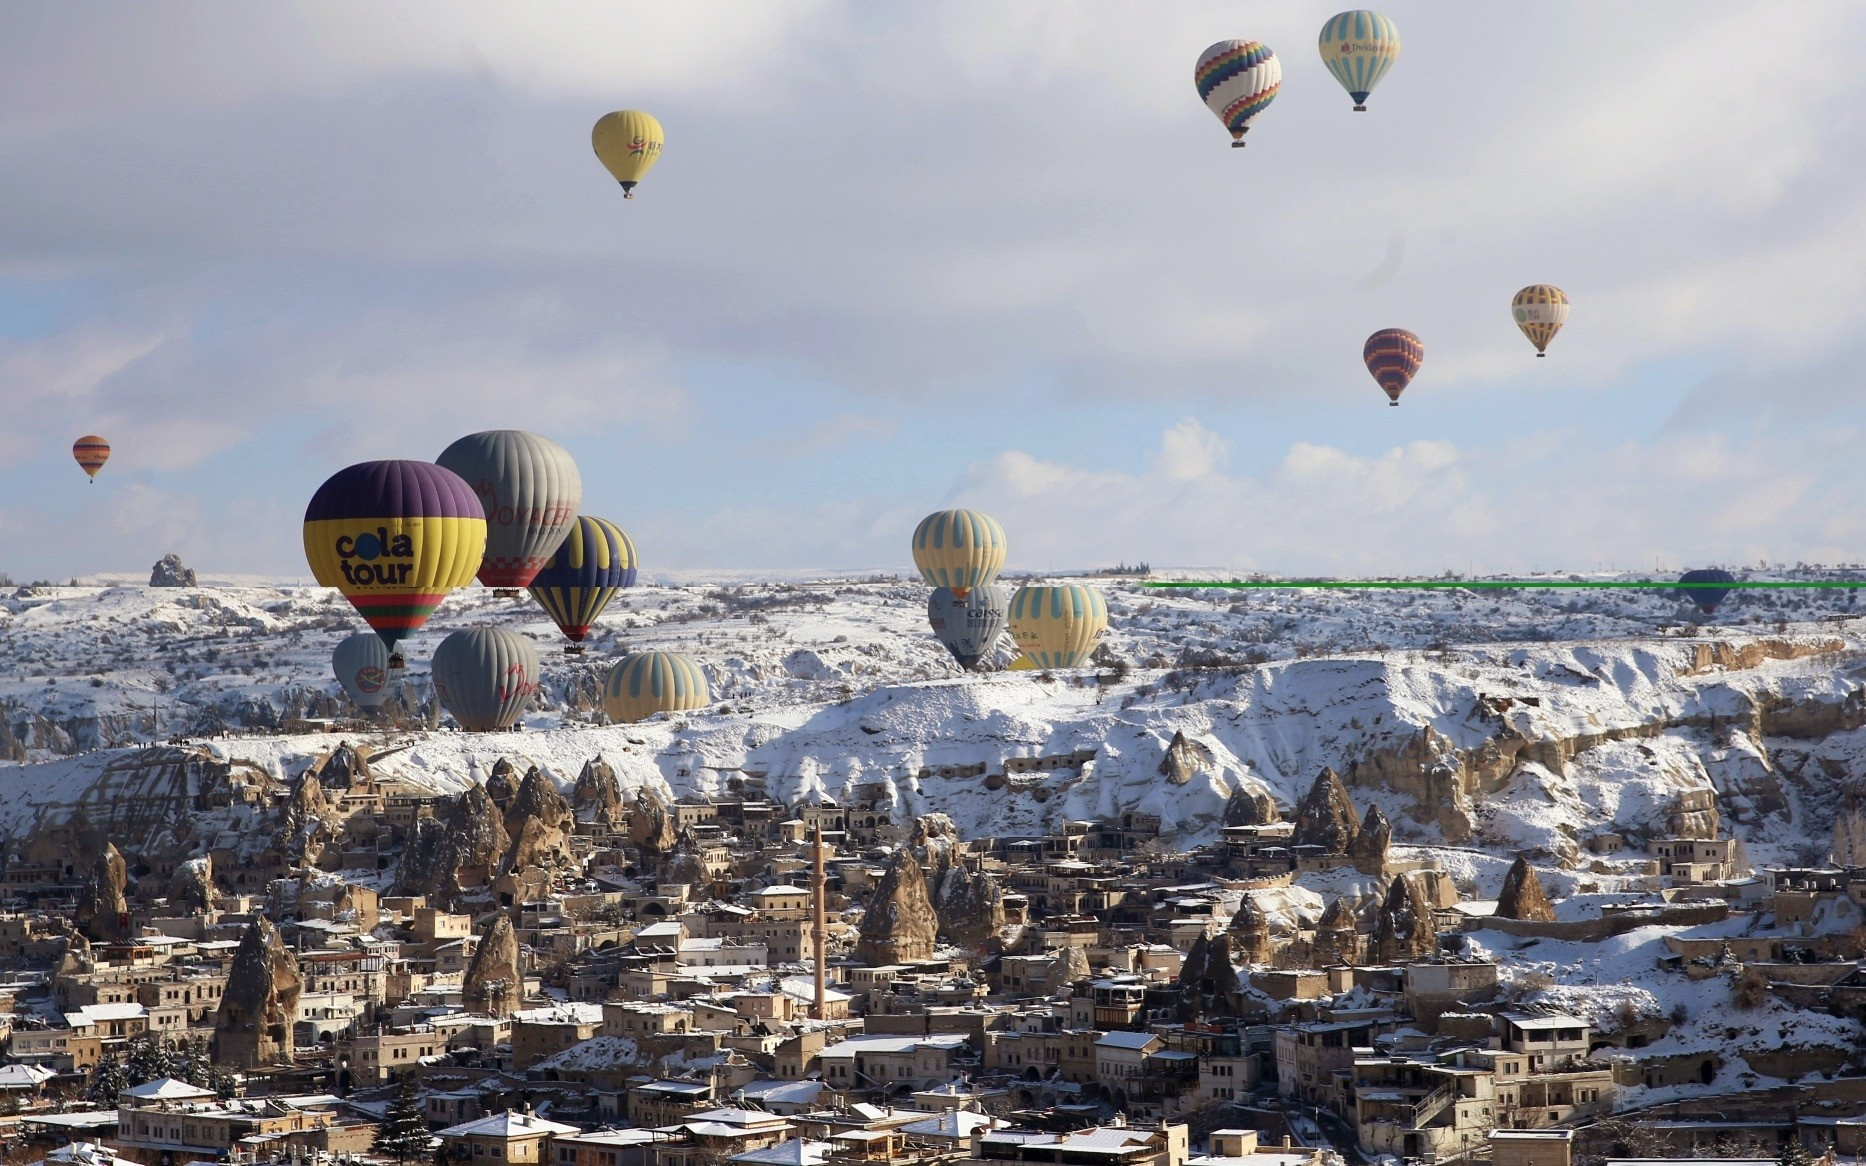 A total of 537,500 tourists took hot air balloon rides in 2018, boosting the tourism revenue of the country by almost $80 million.